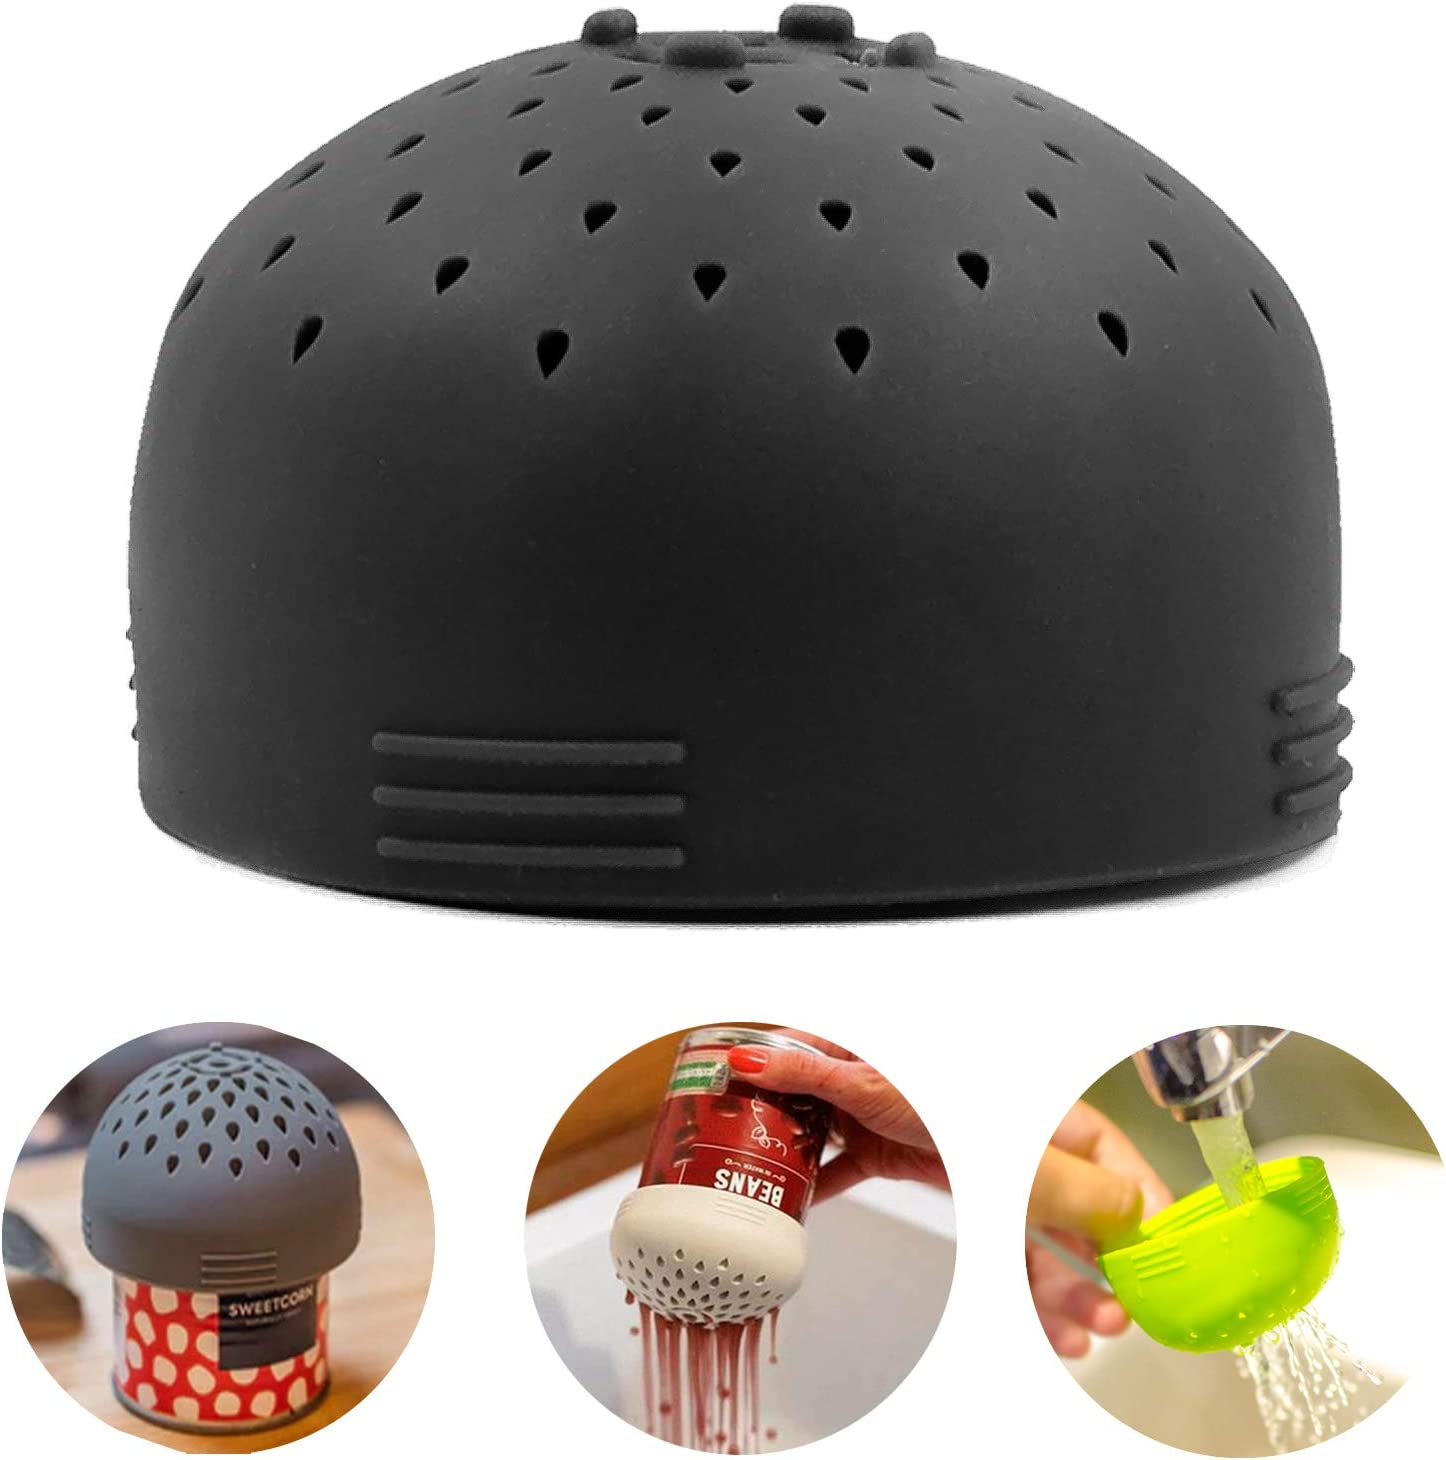 Multifunctional Mini Can Colander, Can Strainer, Made from silicone for Vegetable and Fruit Can Strainer - Quick Draining Strain and Contain Food (Gray)